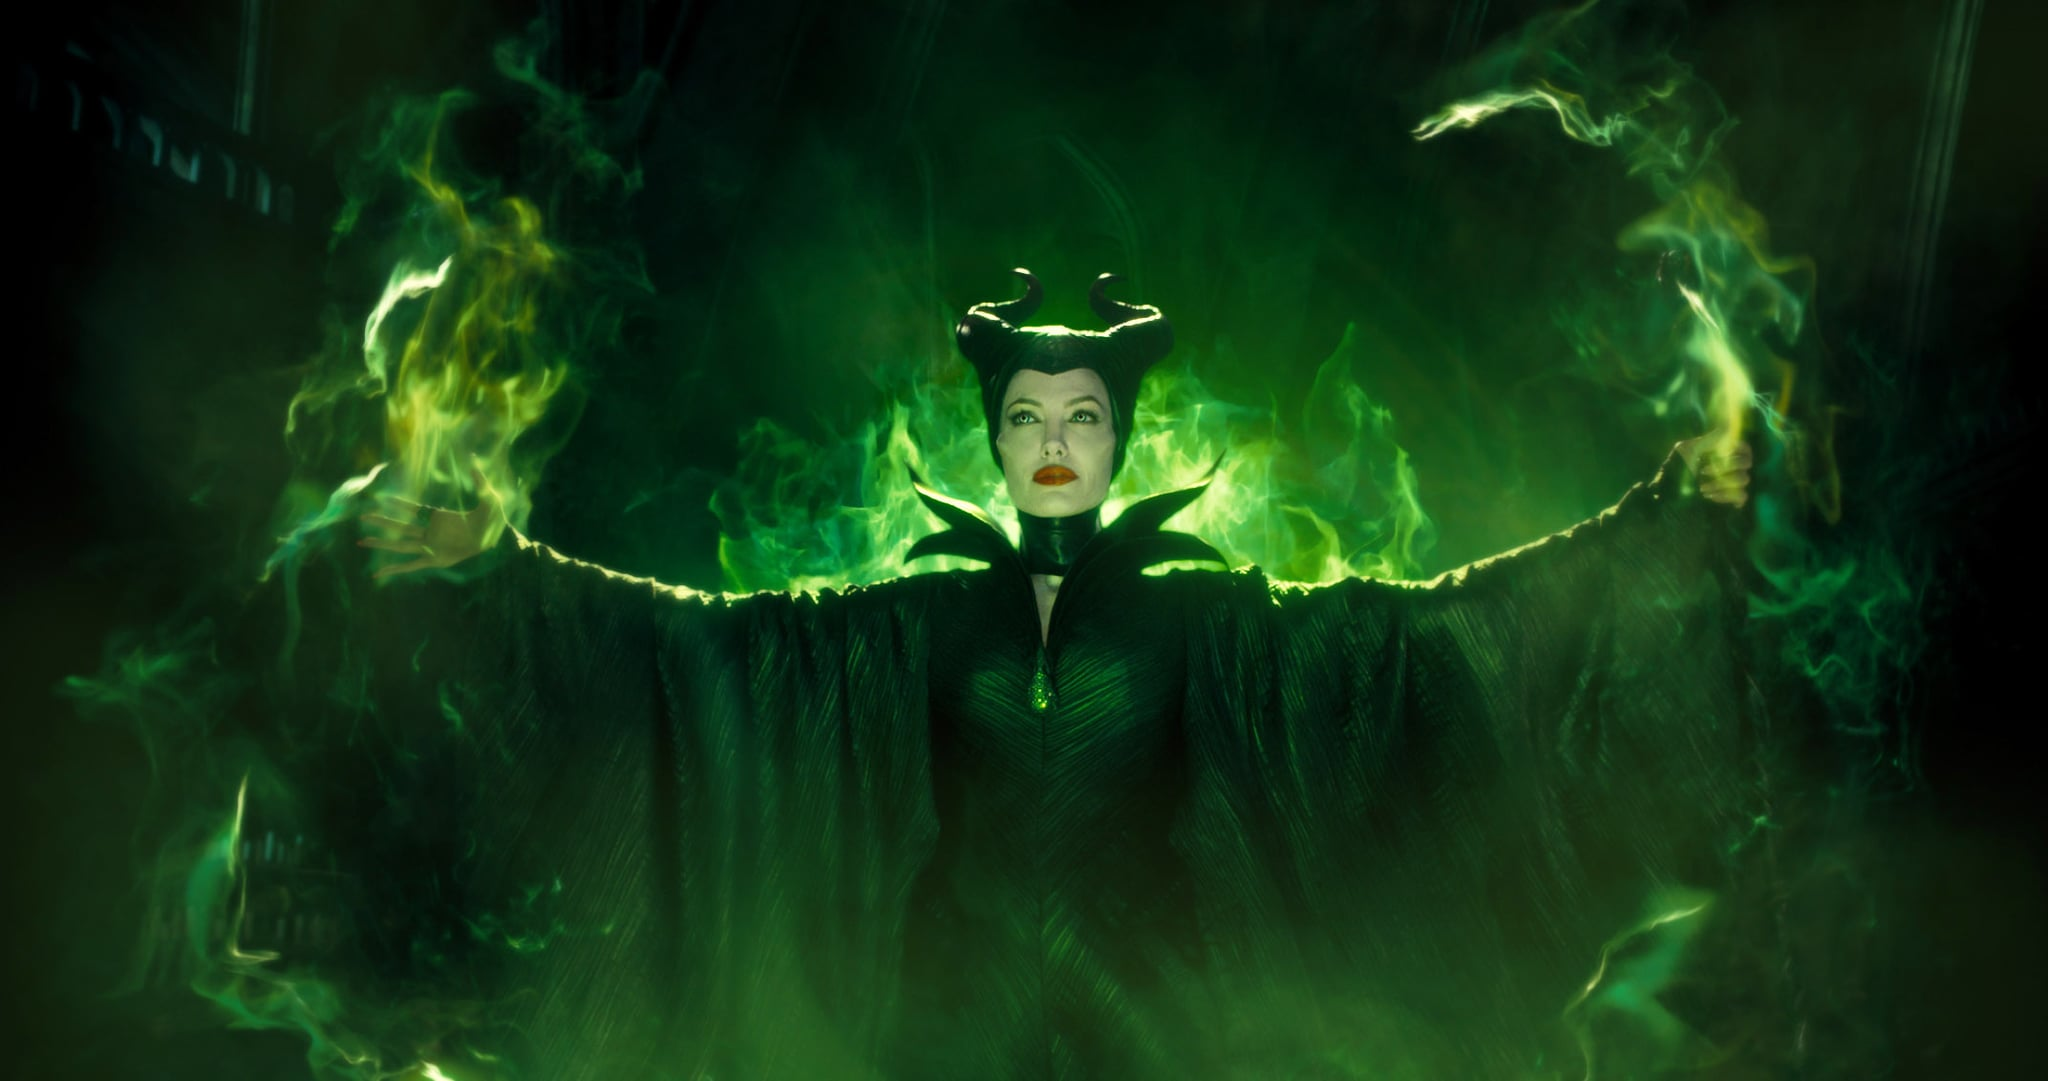 MALEFICENT, Angelina Jolie as Maleficent, 2014. Walt Disney Studios Motion Pictures/courtesy Everett Collection